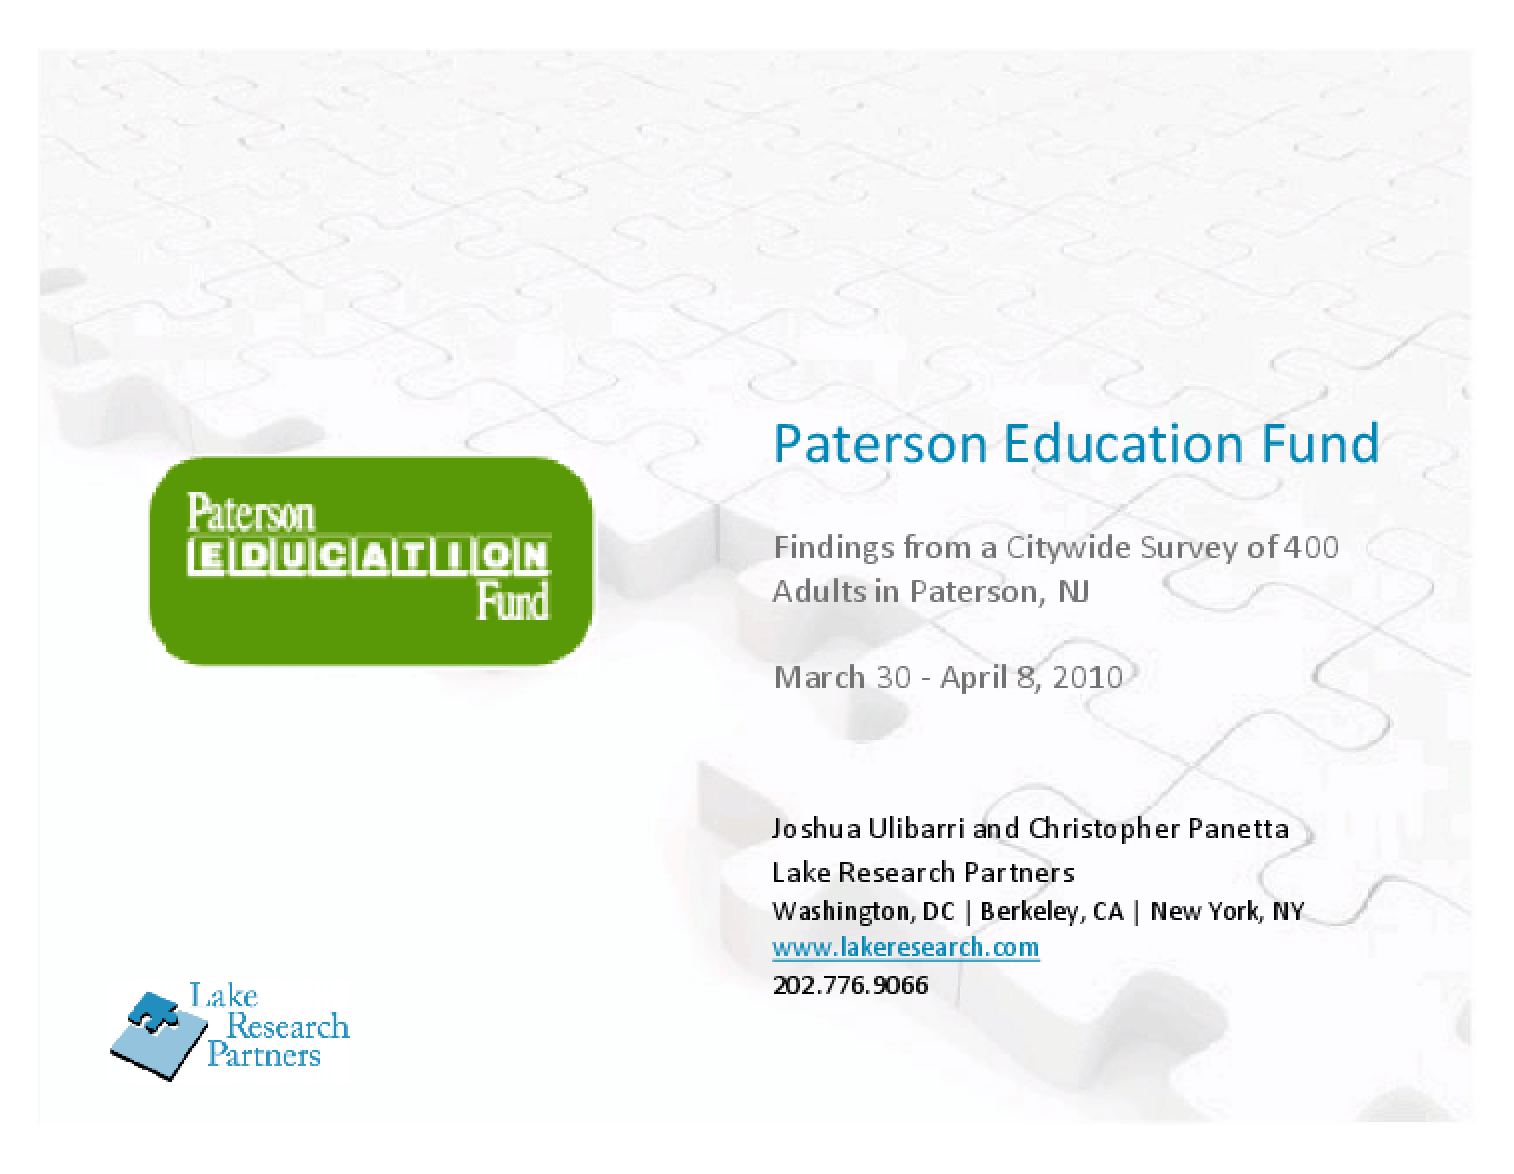 Paterson Education Fund: Findings from a Citywide Survey of 400 Adults in Paterson, NJ - 2010